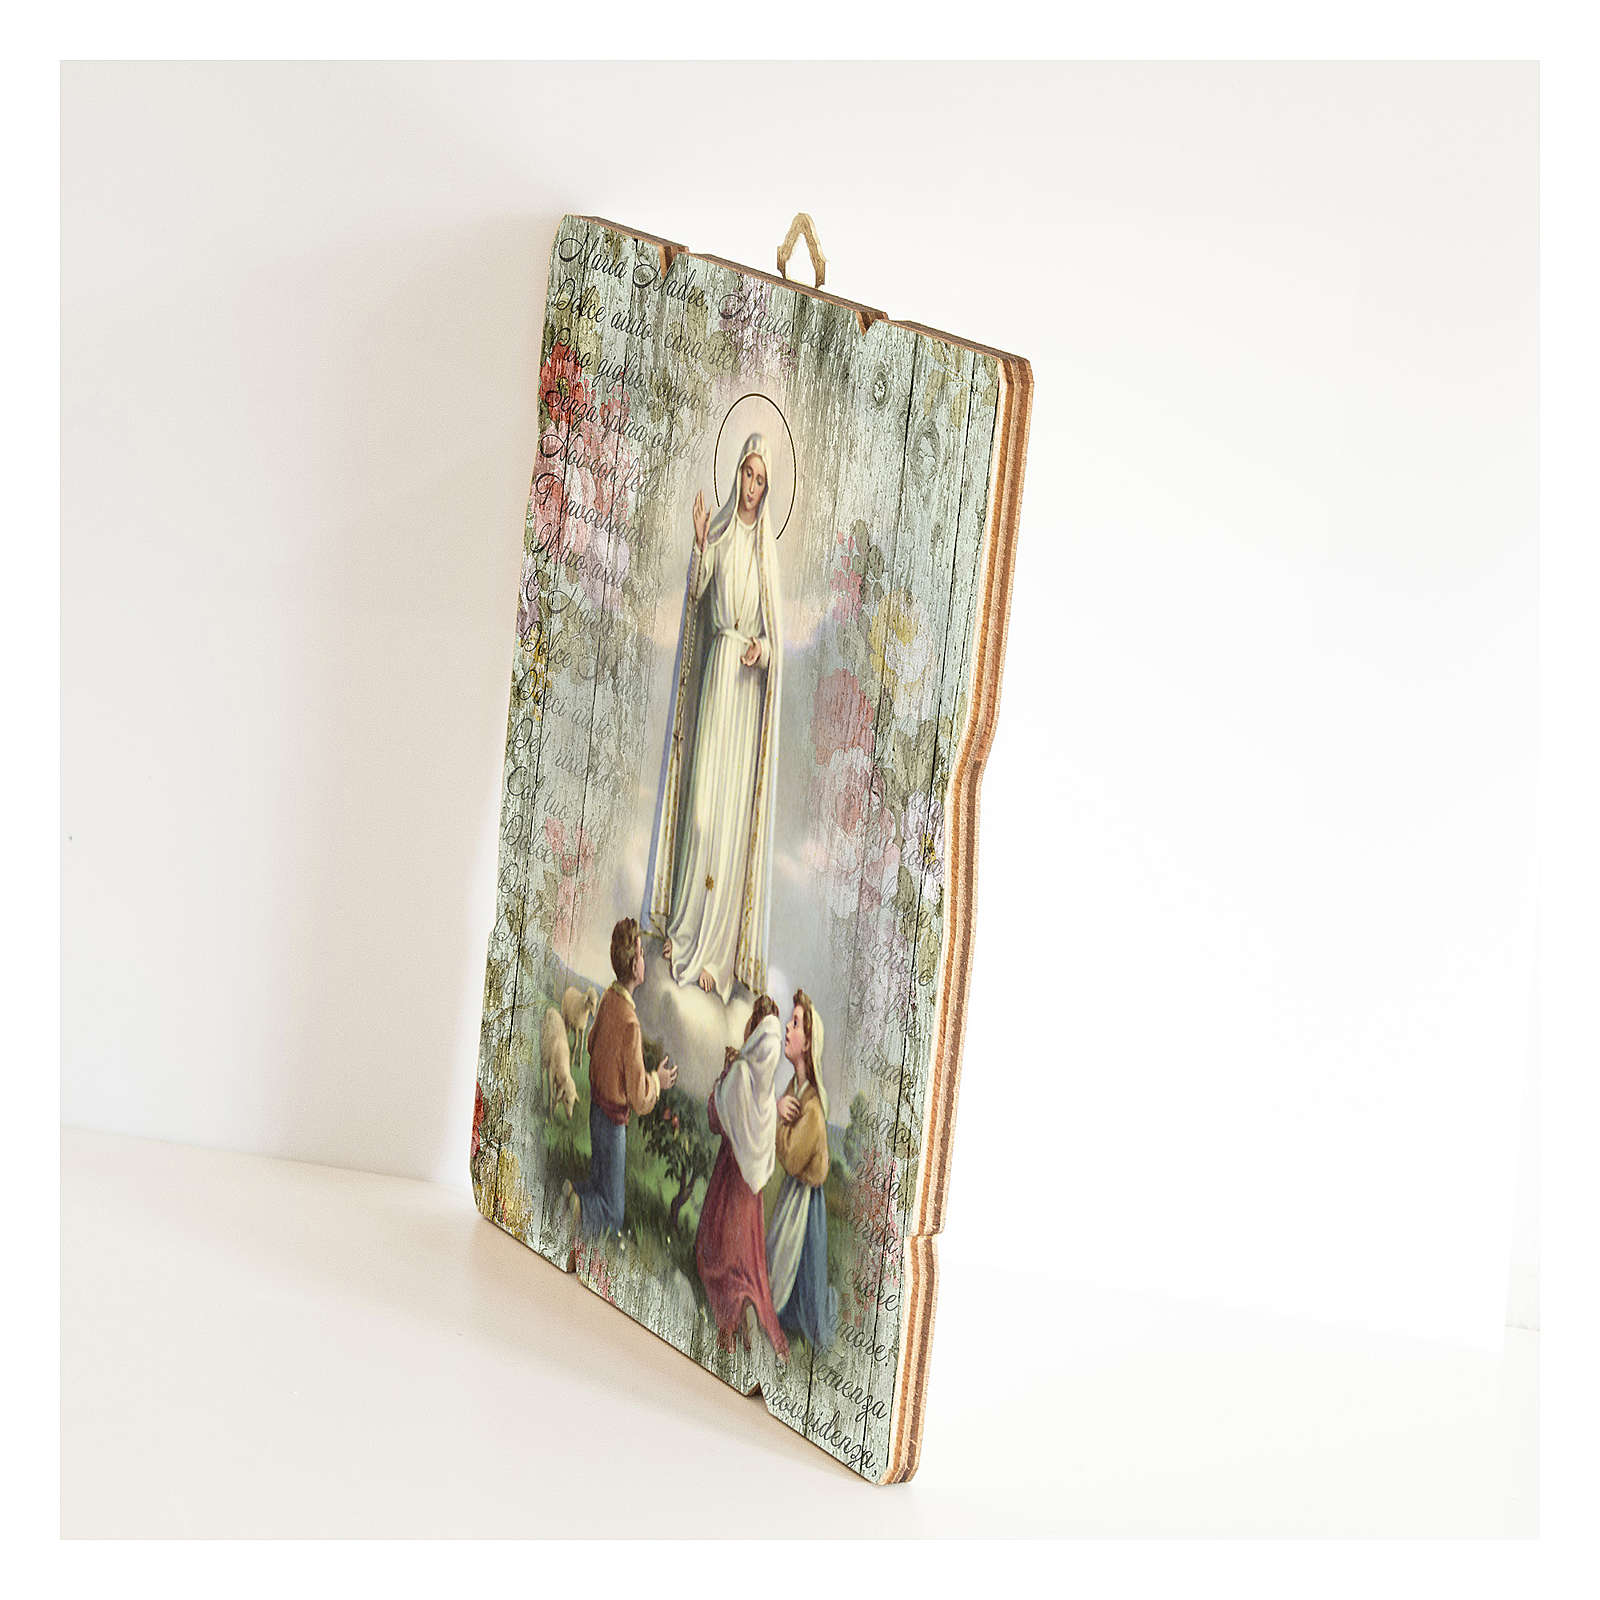 Our Lady of Fatima painting in moulded wood with hook on the back 3